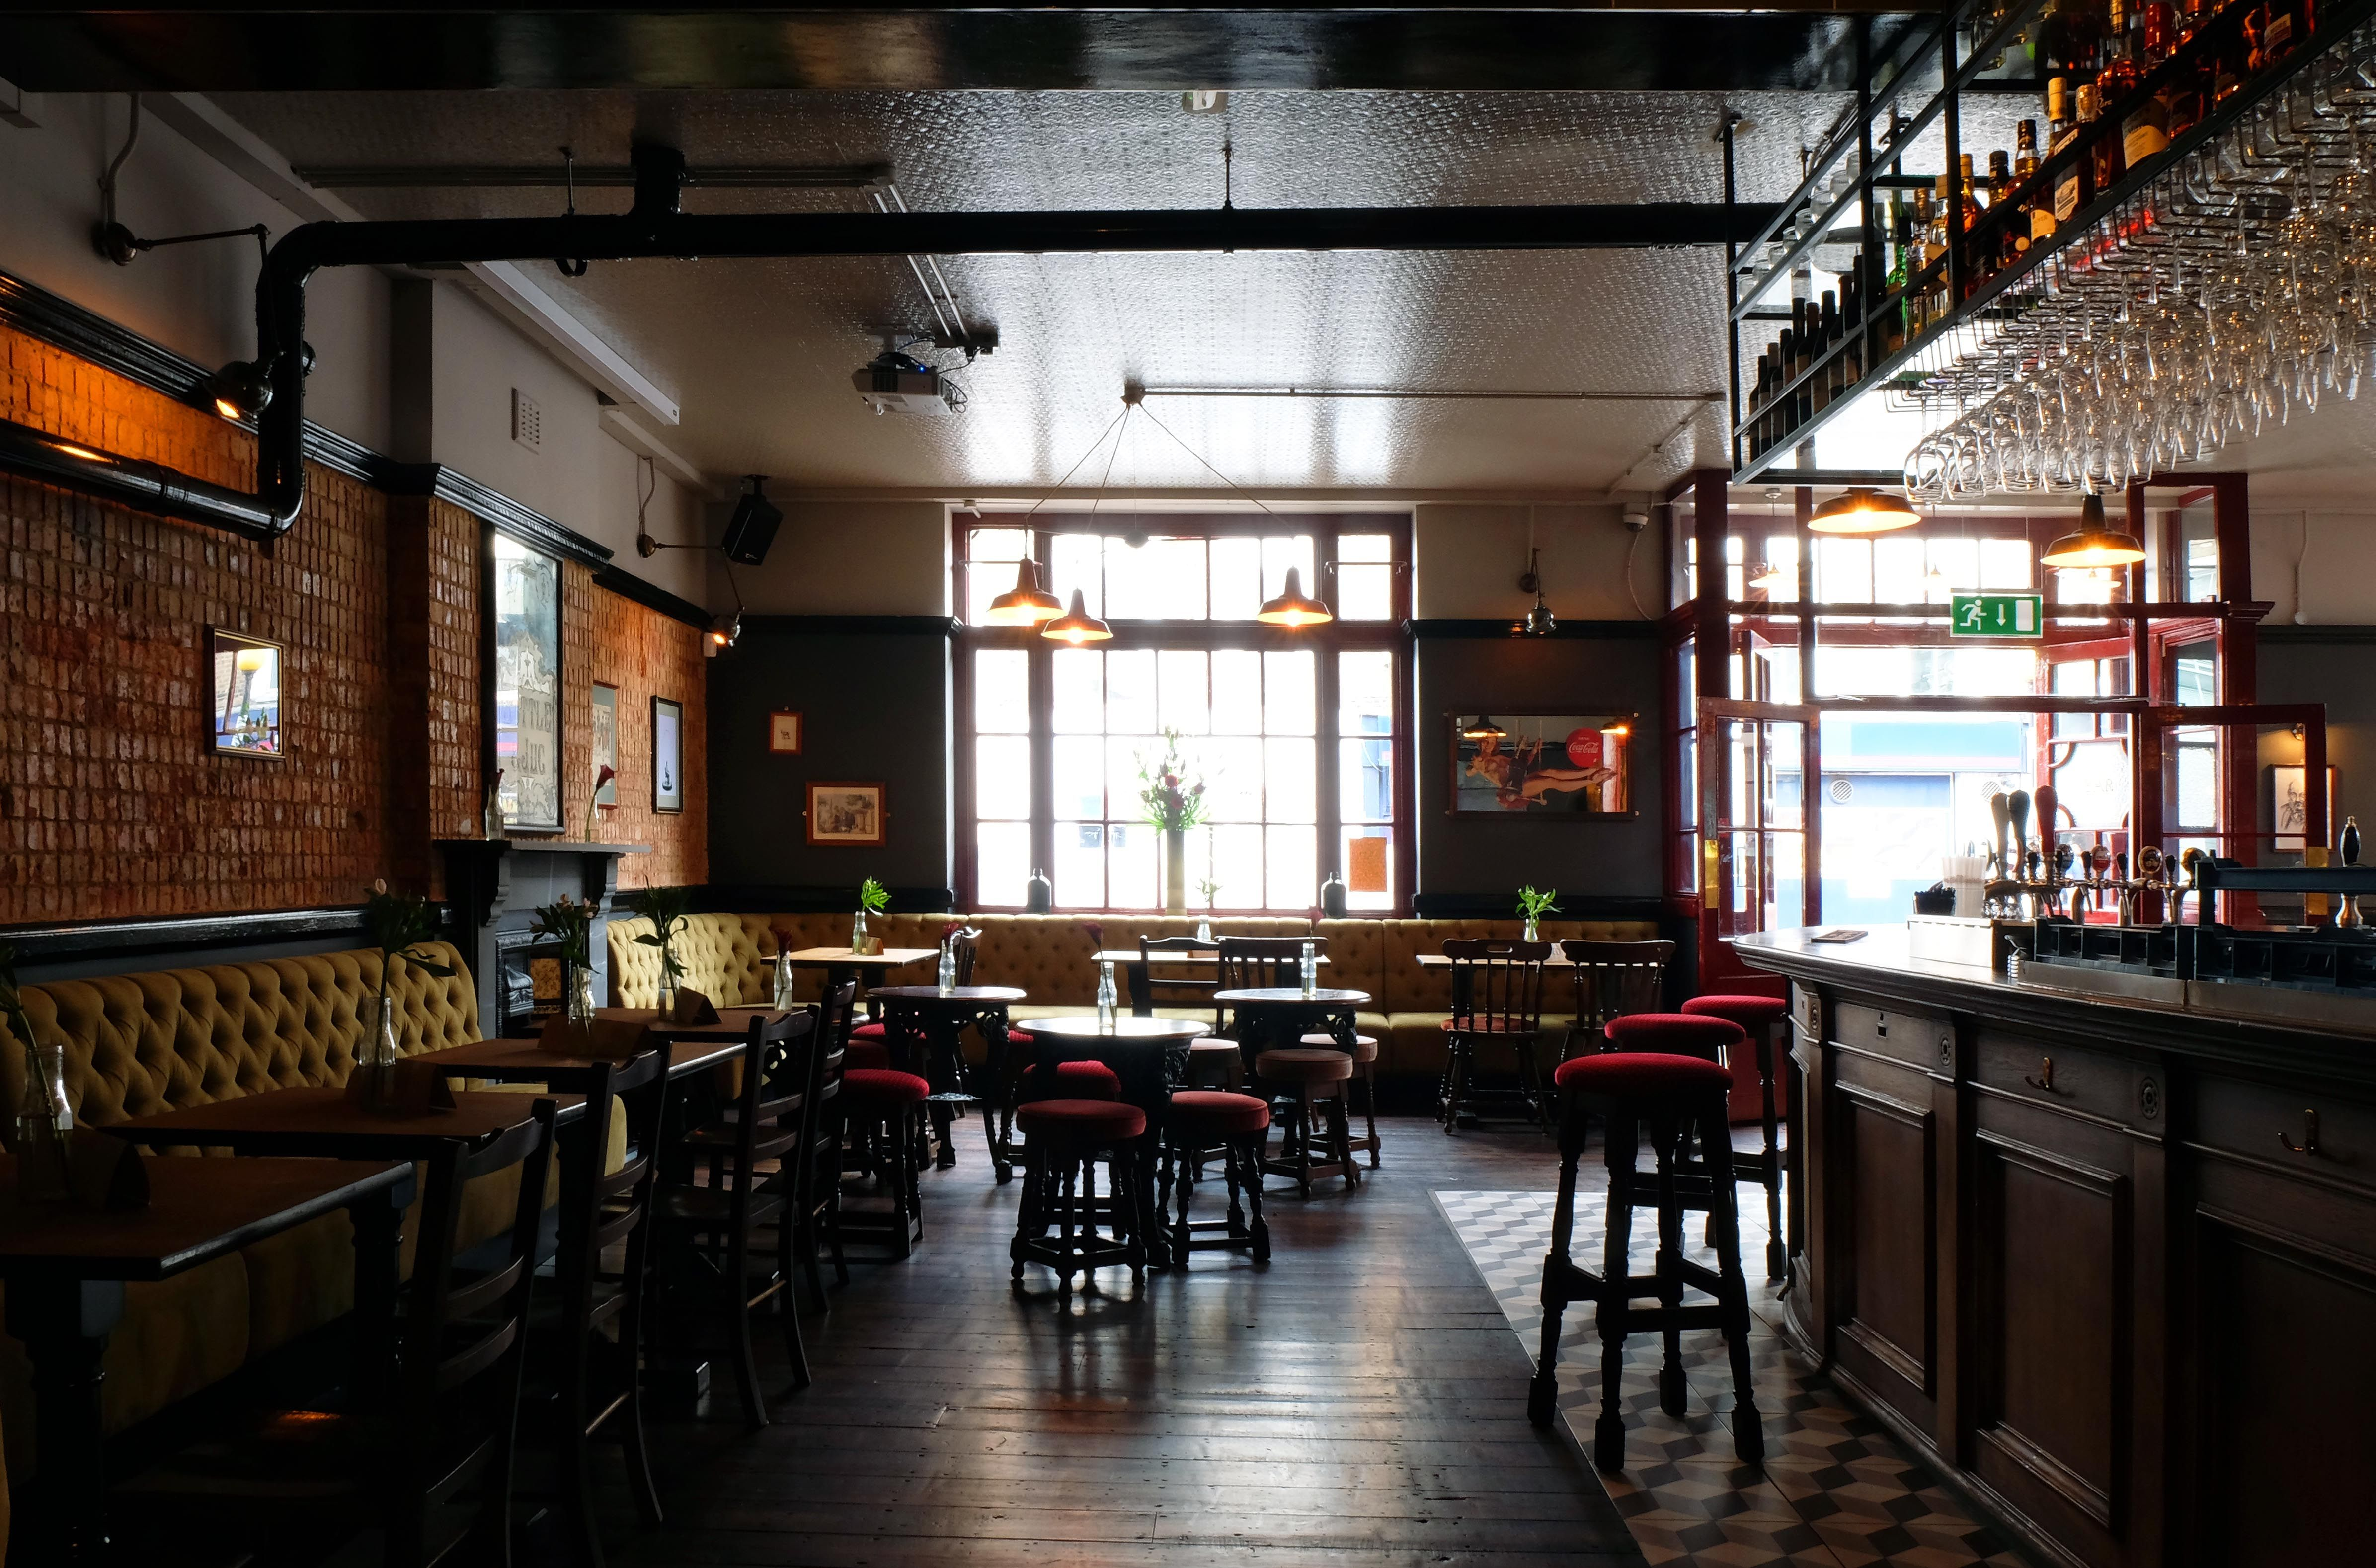 Pub | The Gipsy Queen, Kentish Town | Pub venues | Pinterest | Round bar